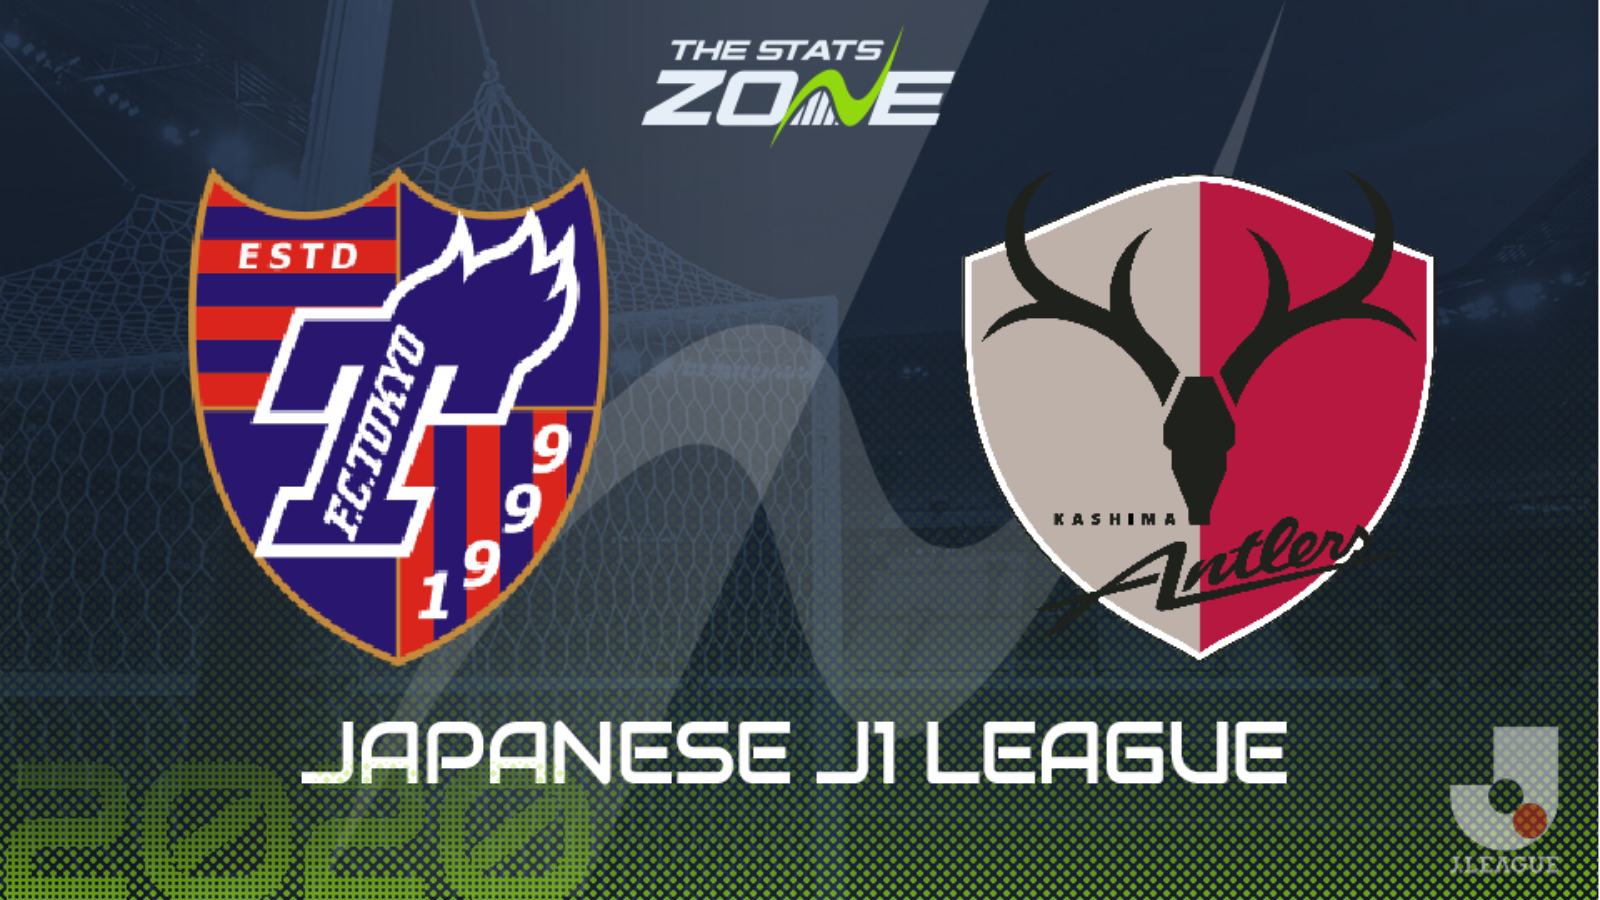 2020 Japanese J1 League Fc Tokyo Vs Kashima Antlers Preview Prediction The Stats Zone